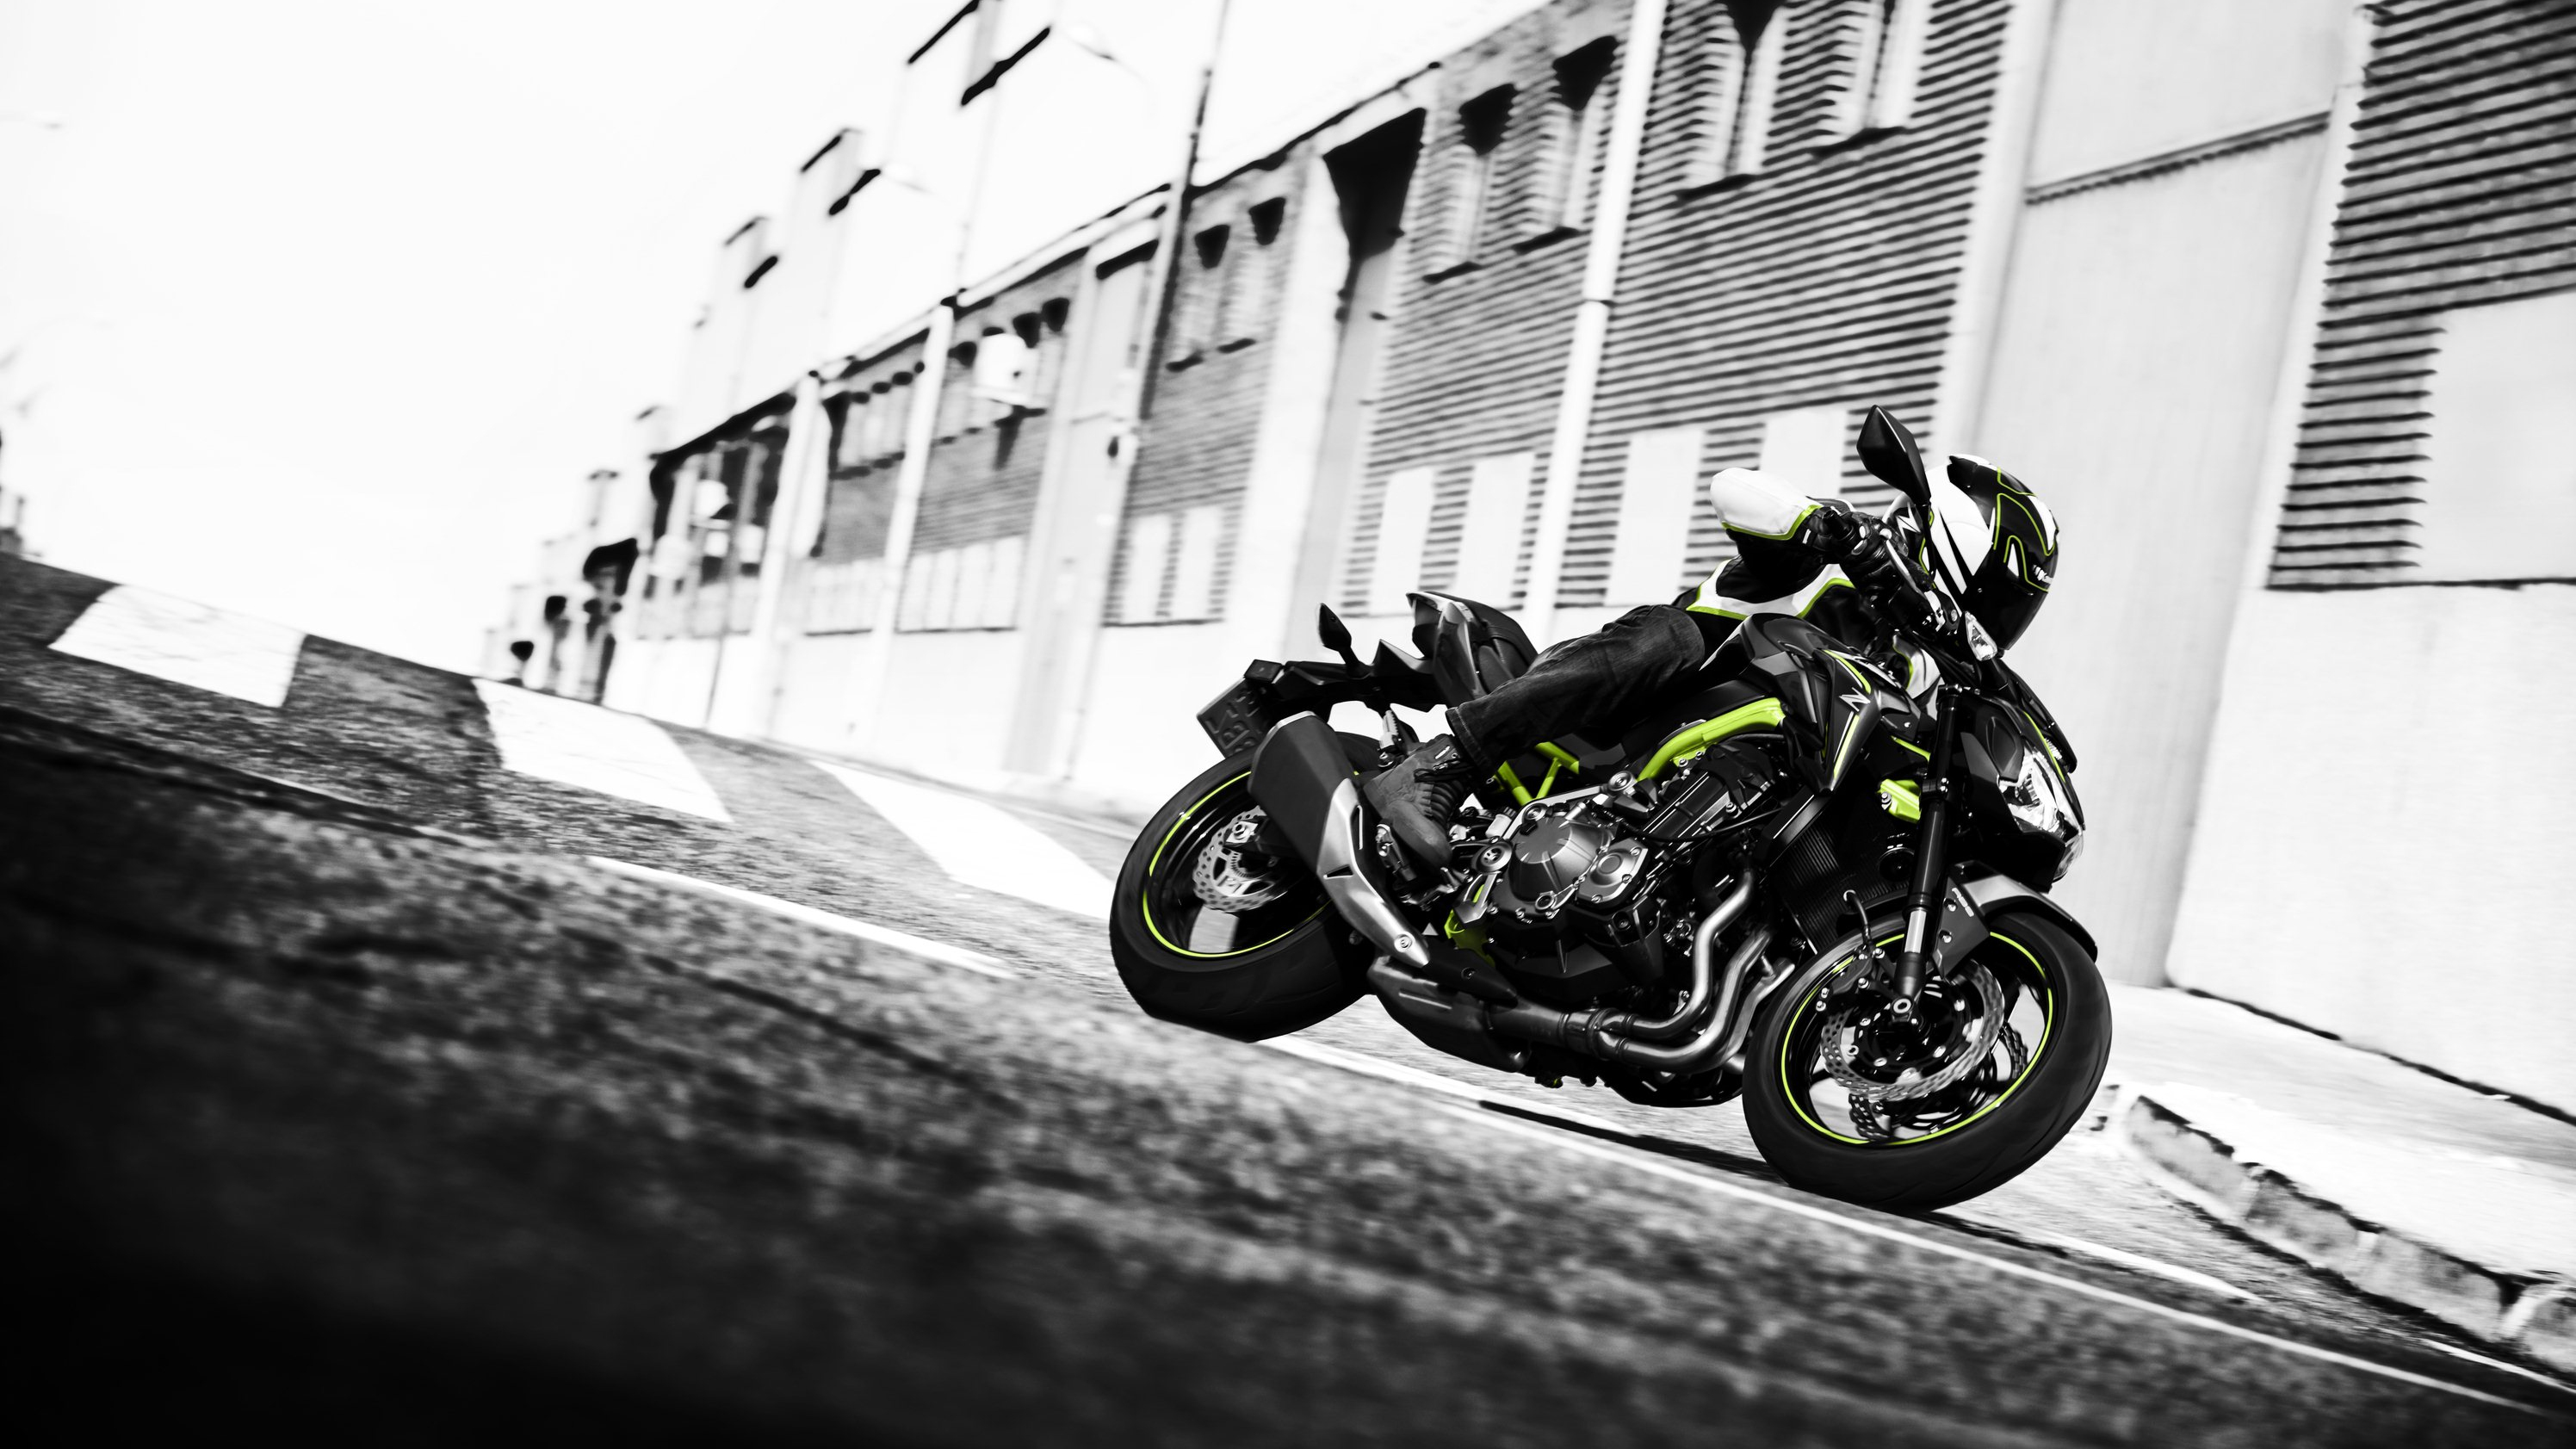 Kawasaki Steps Up Its Bid To Grab A Slice Of The Growing Naked Bike Market With Z900 ABS As Demand For Genre Increased So Have Expectations